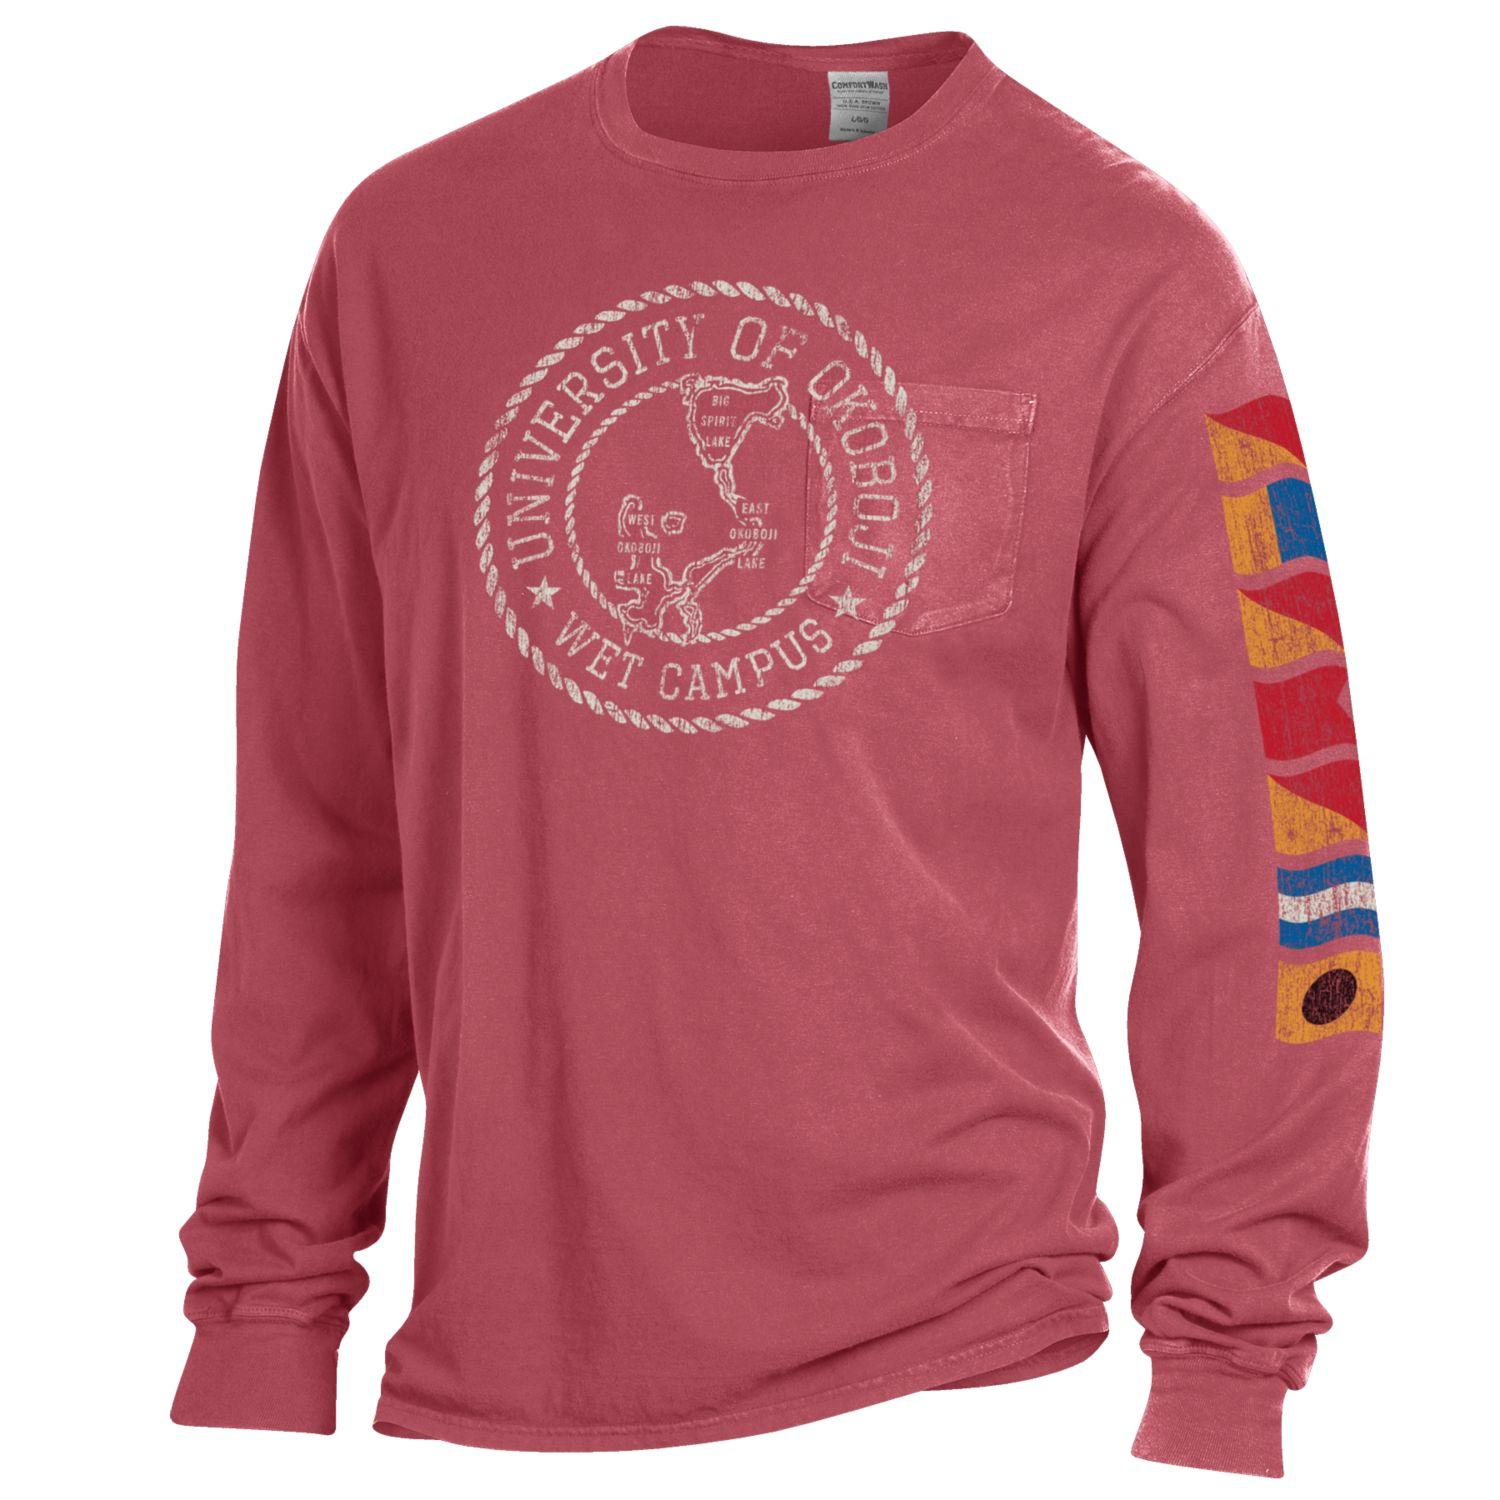 Lake Okoboji Campus Garment Dyed Long Sleeve Pocket Tee - Crimson